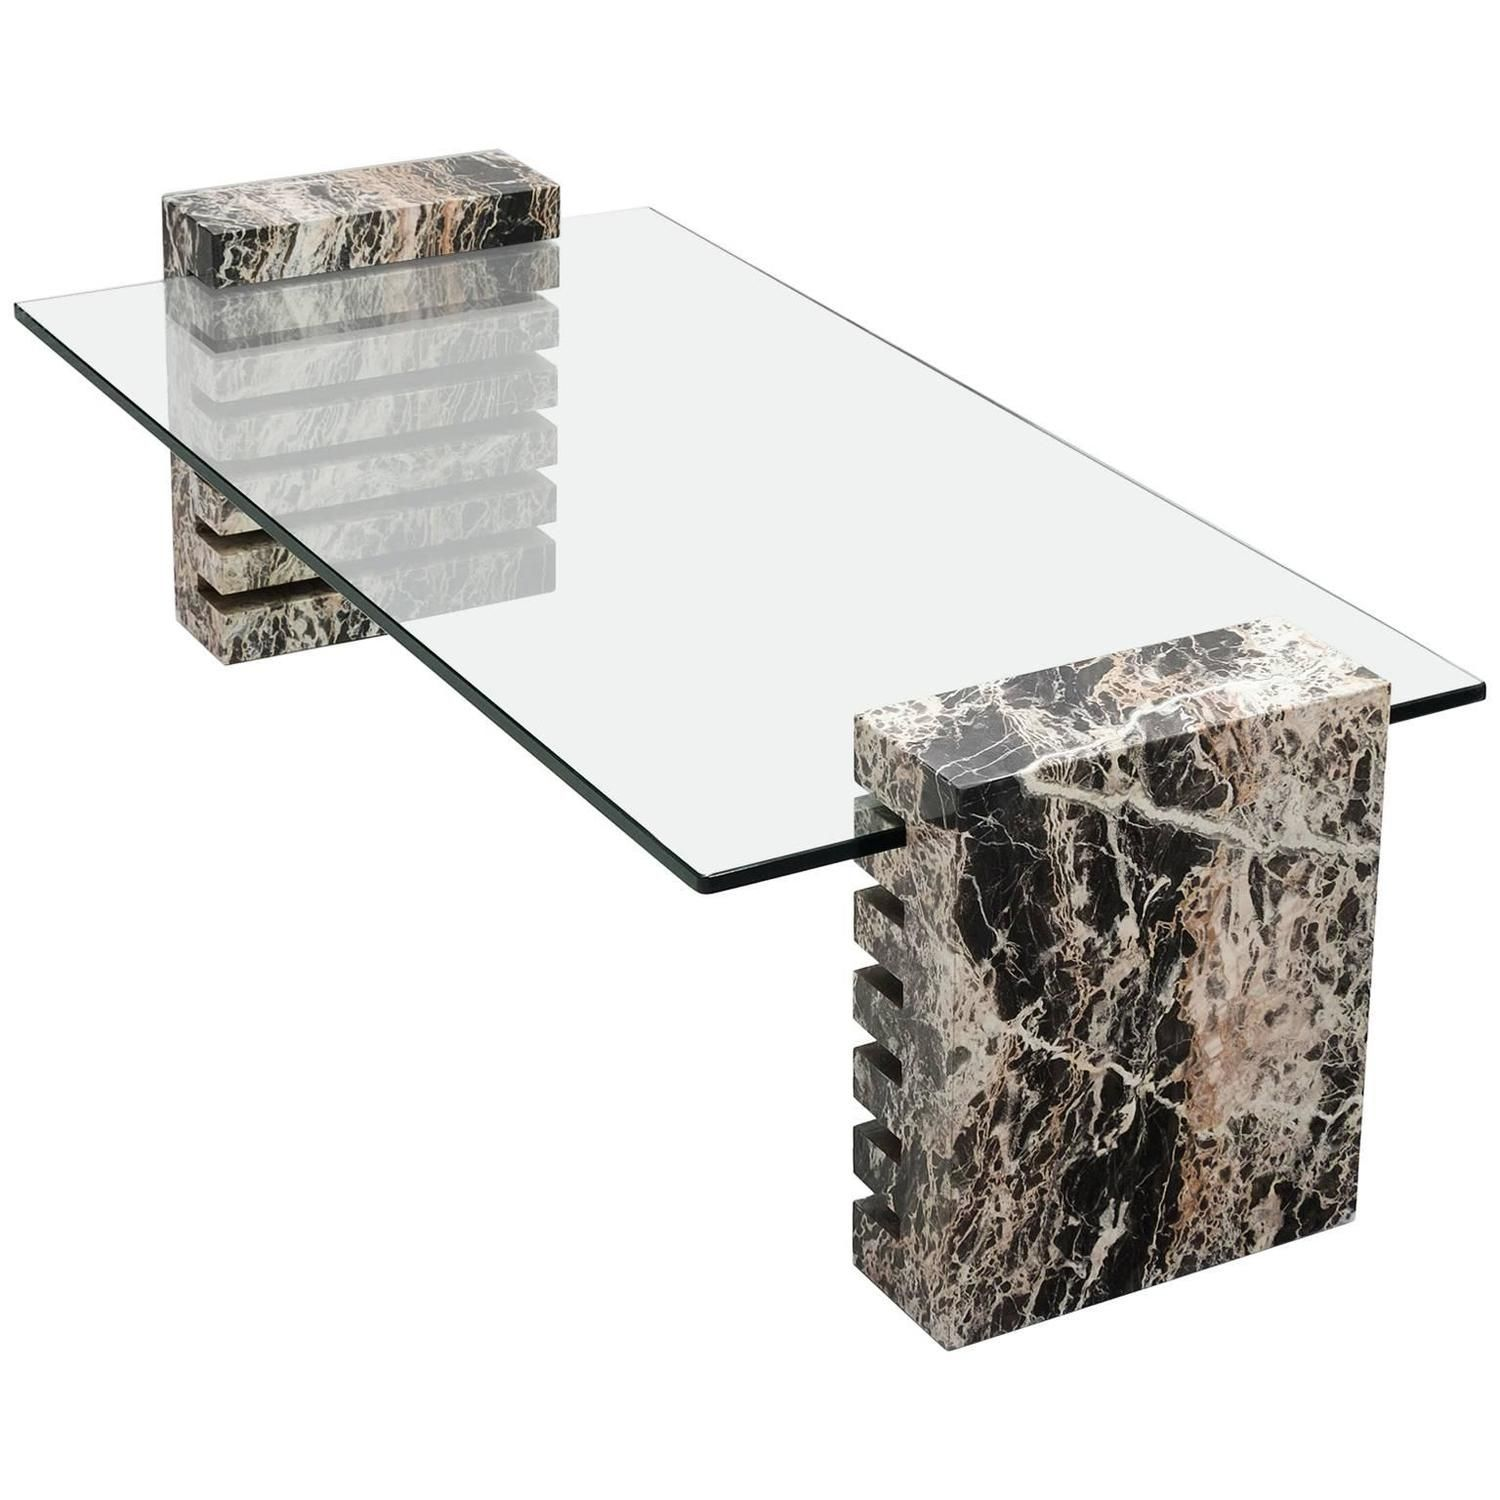 Unique Coffee Table Design Ideas Coffee Table Design Over Is A Very Admirable And Also Modern Layouts Hope You Un Couchtisch Antik Couchtisch Glas Couchtisch [ 1500 x 1500 Pixel ]